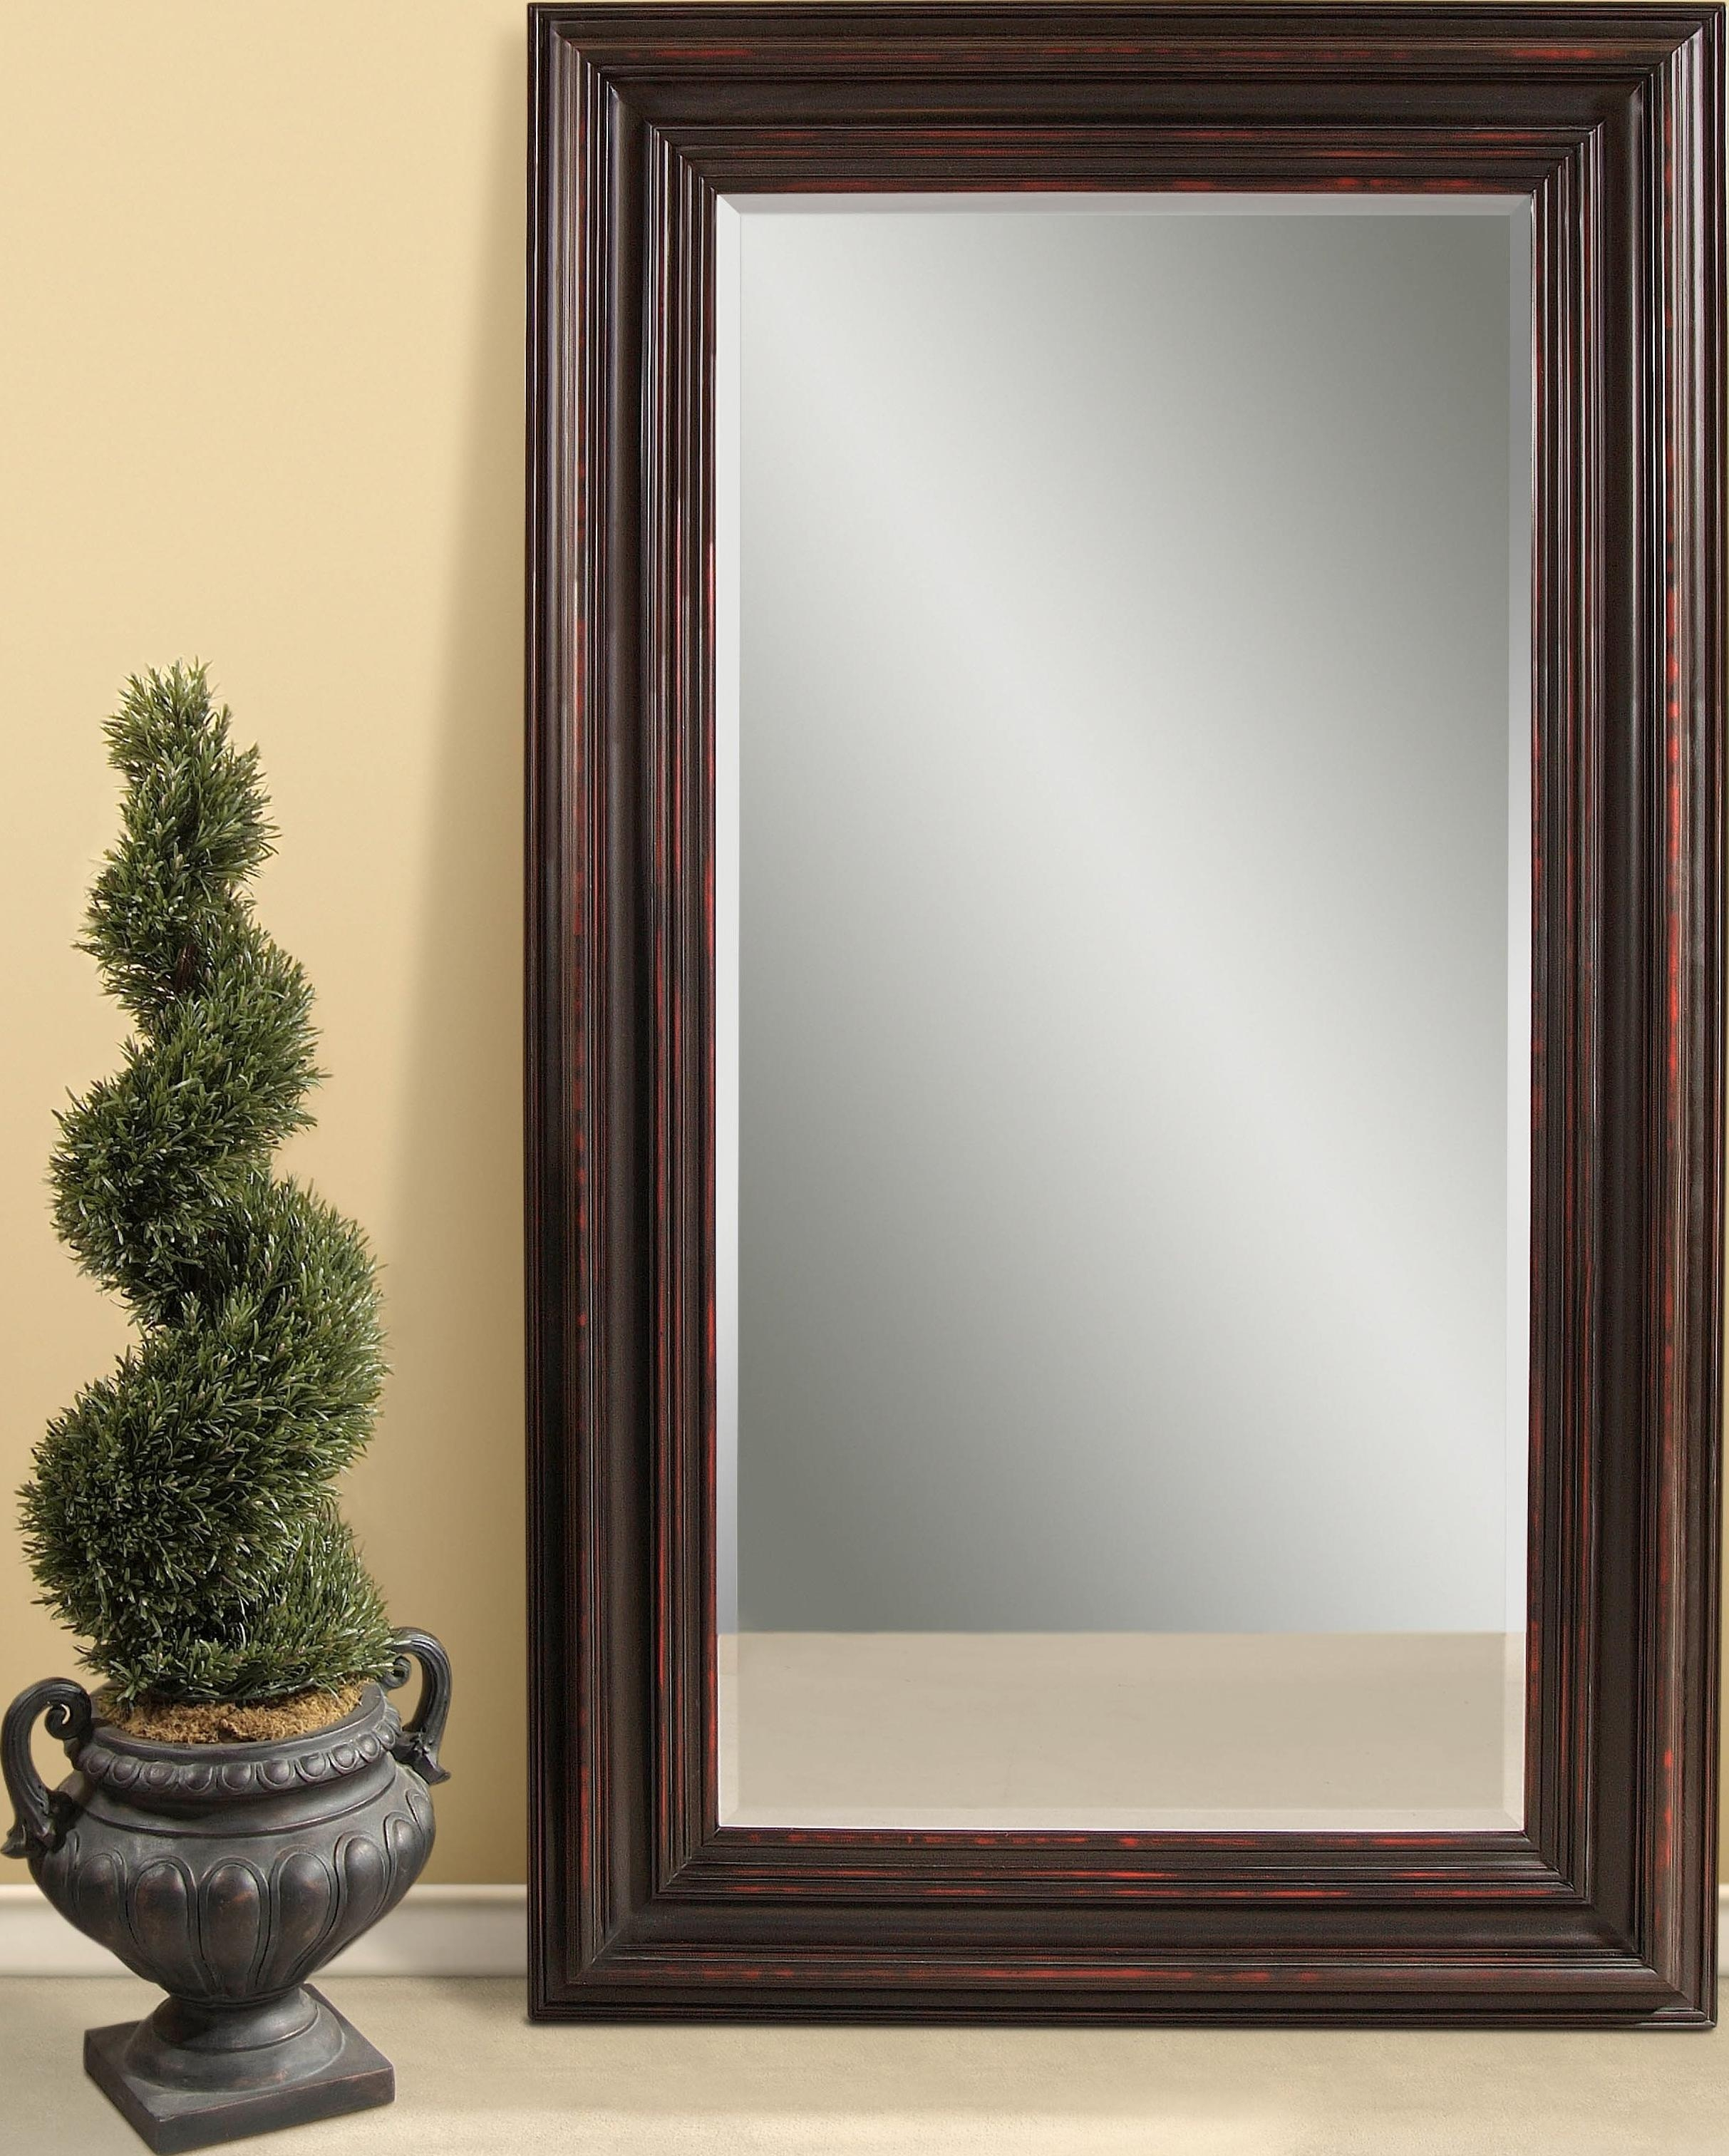 Cheap wall mirror